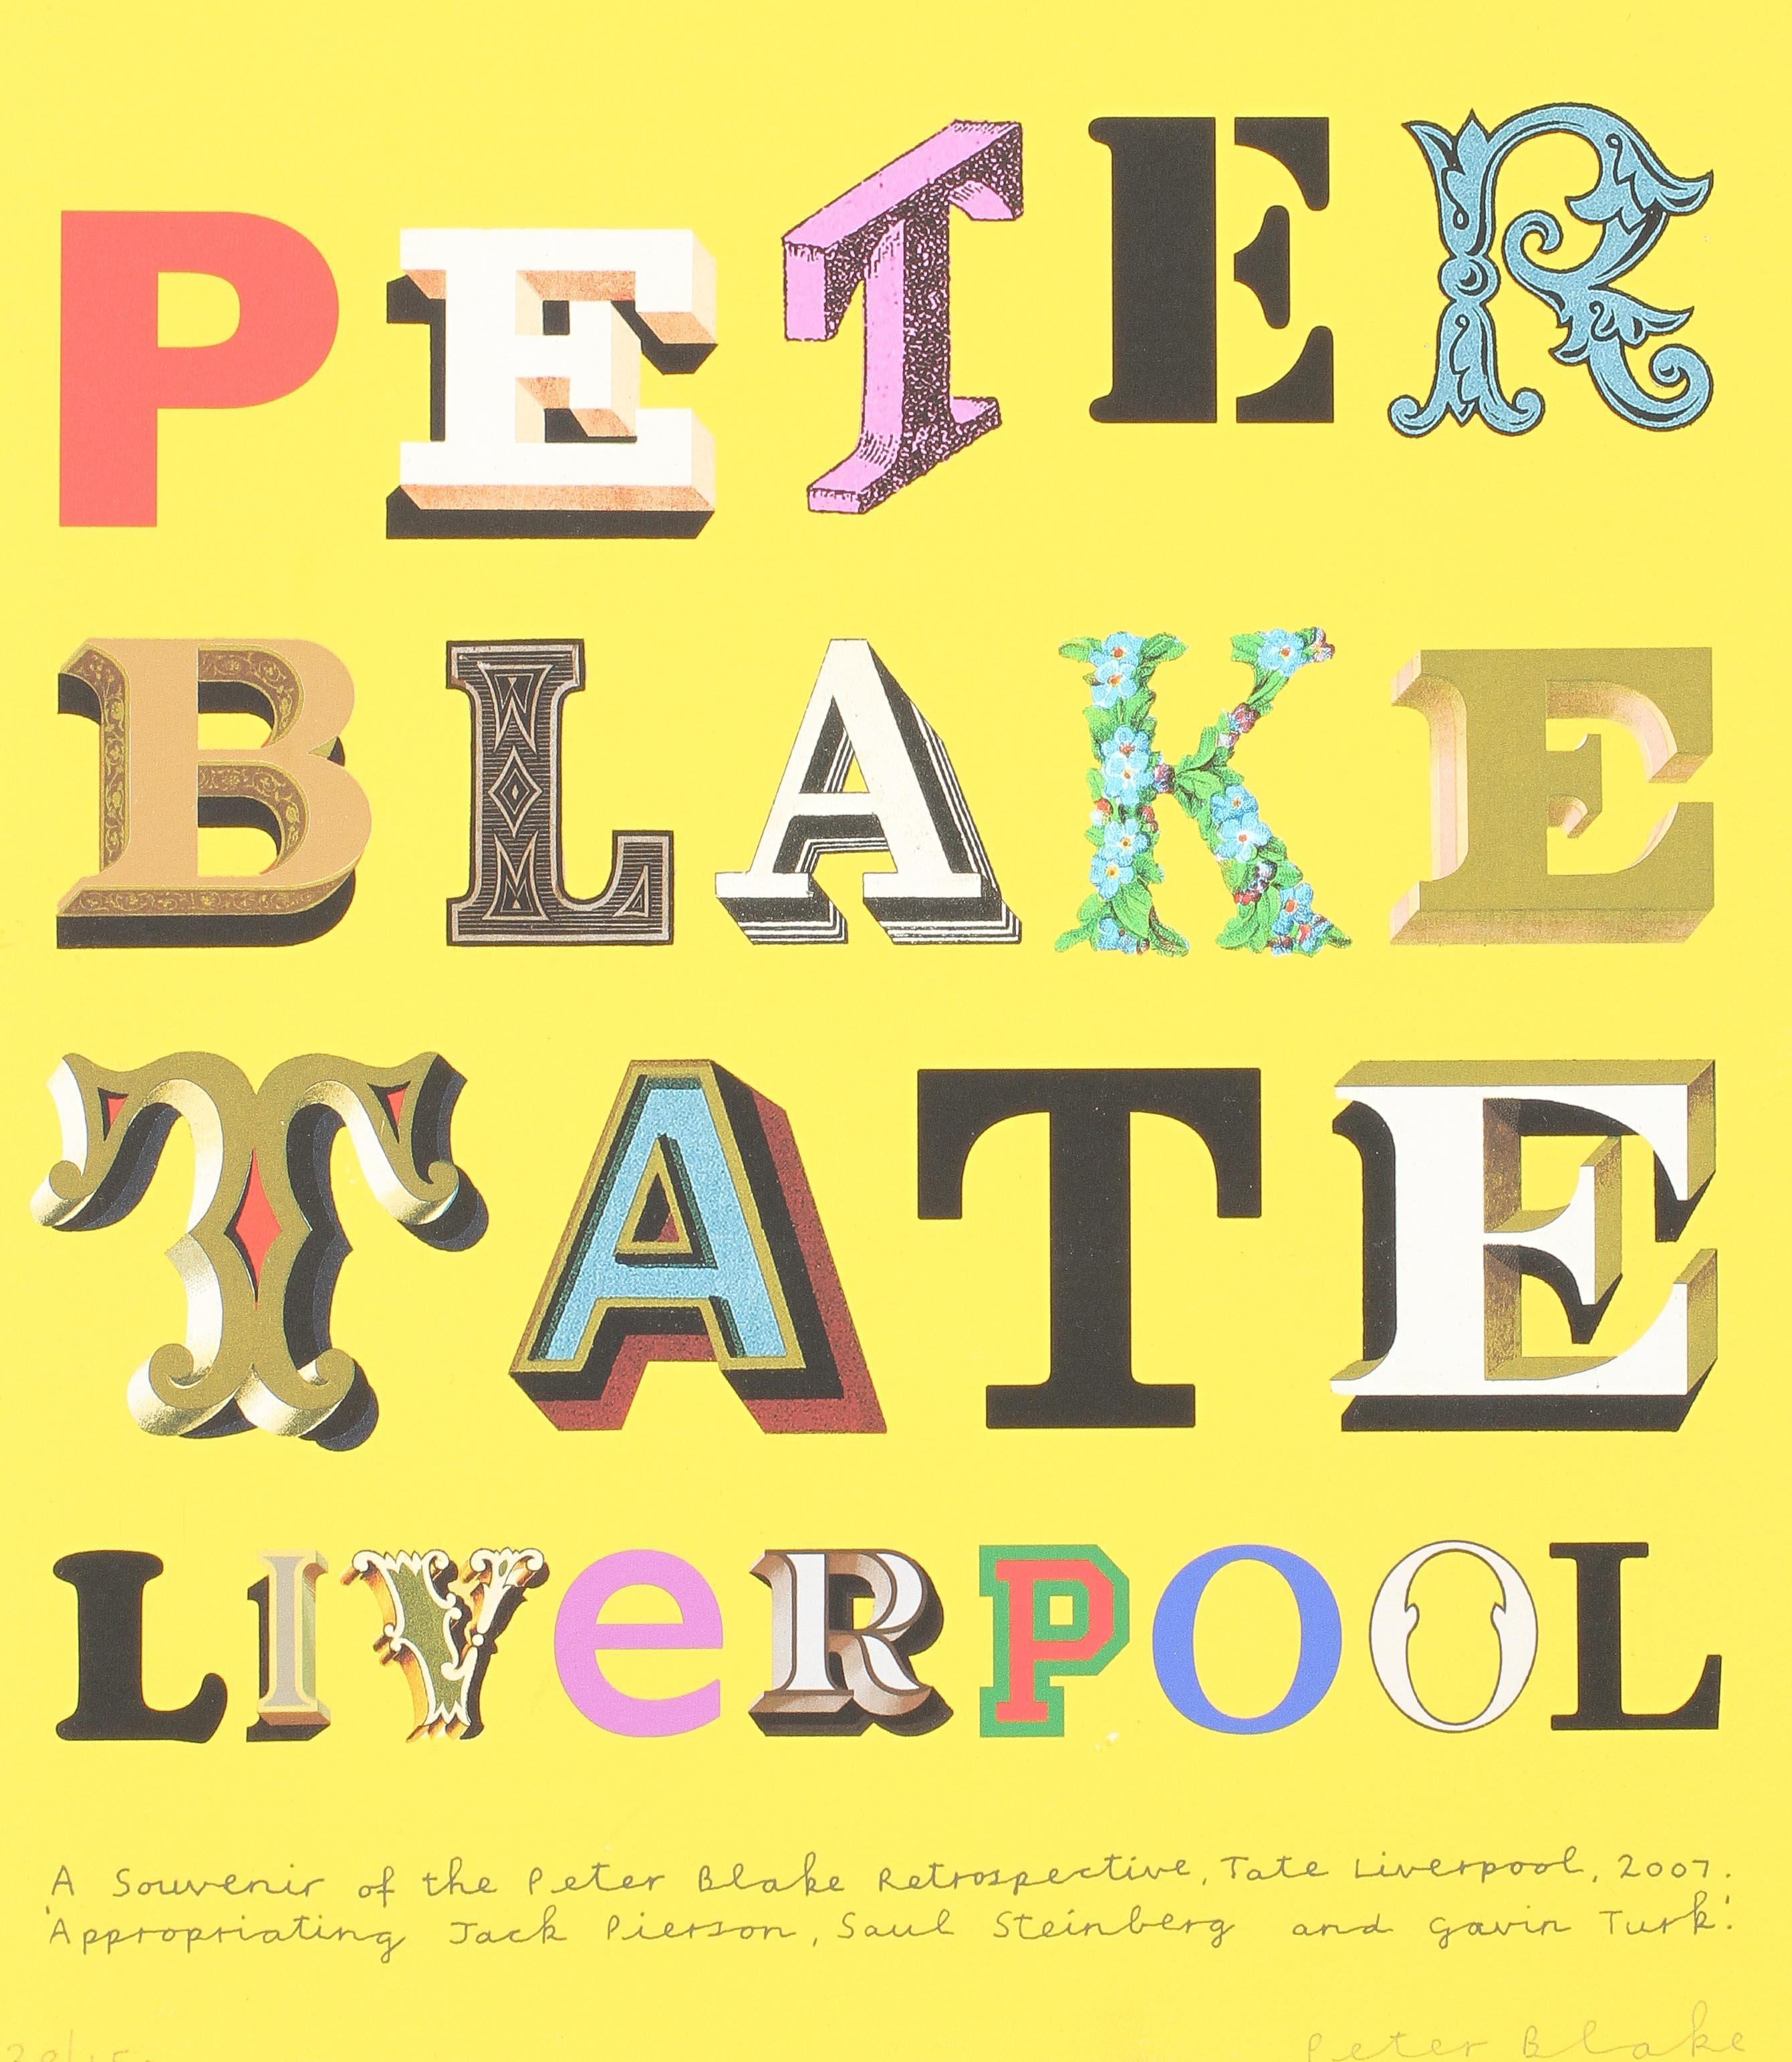 A Peter Blake Tate Liverpool,Retrospective limited edition print, signed in pencil by Blake,